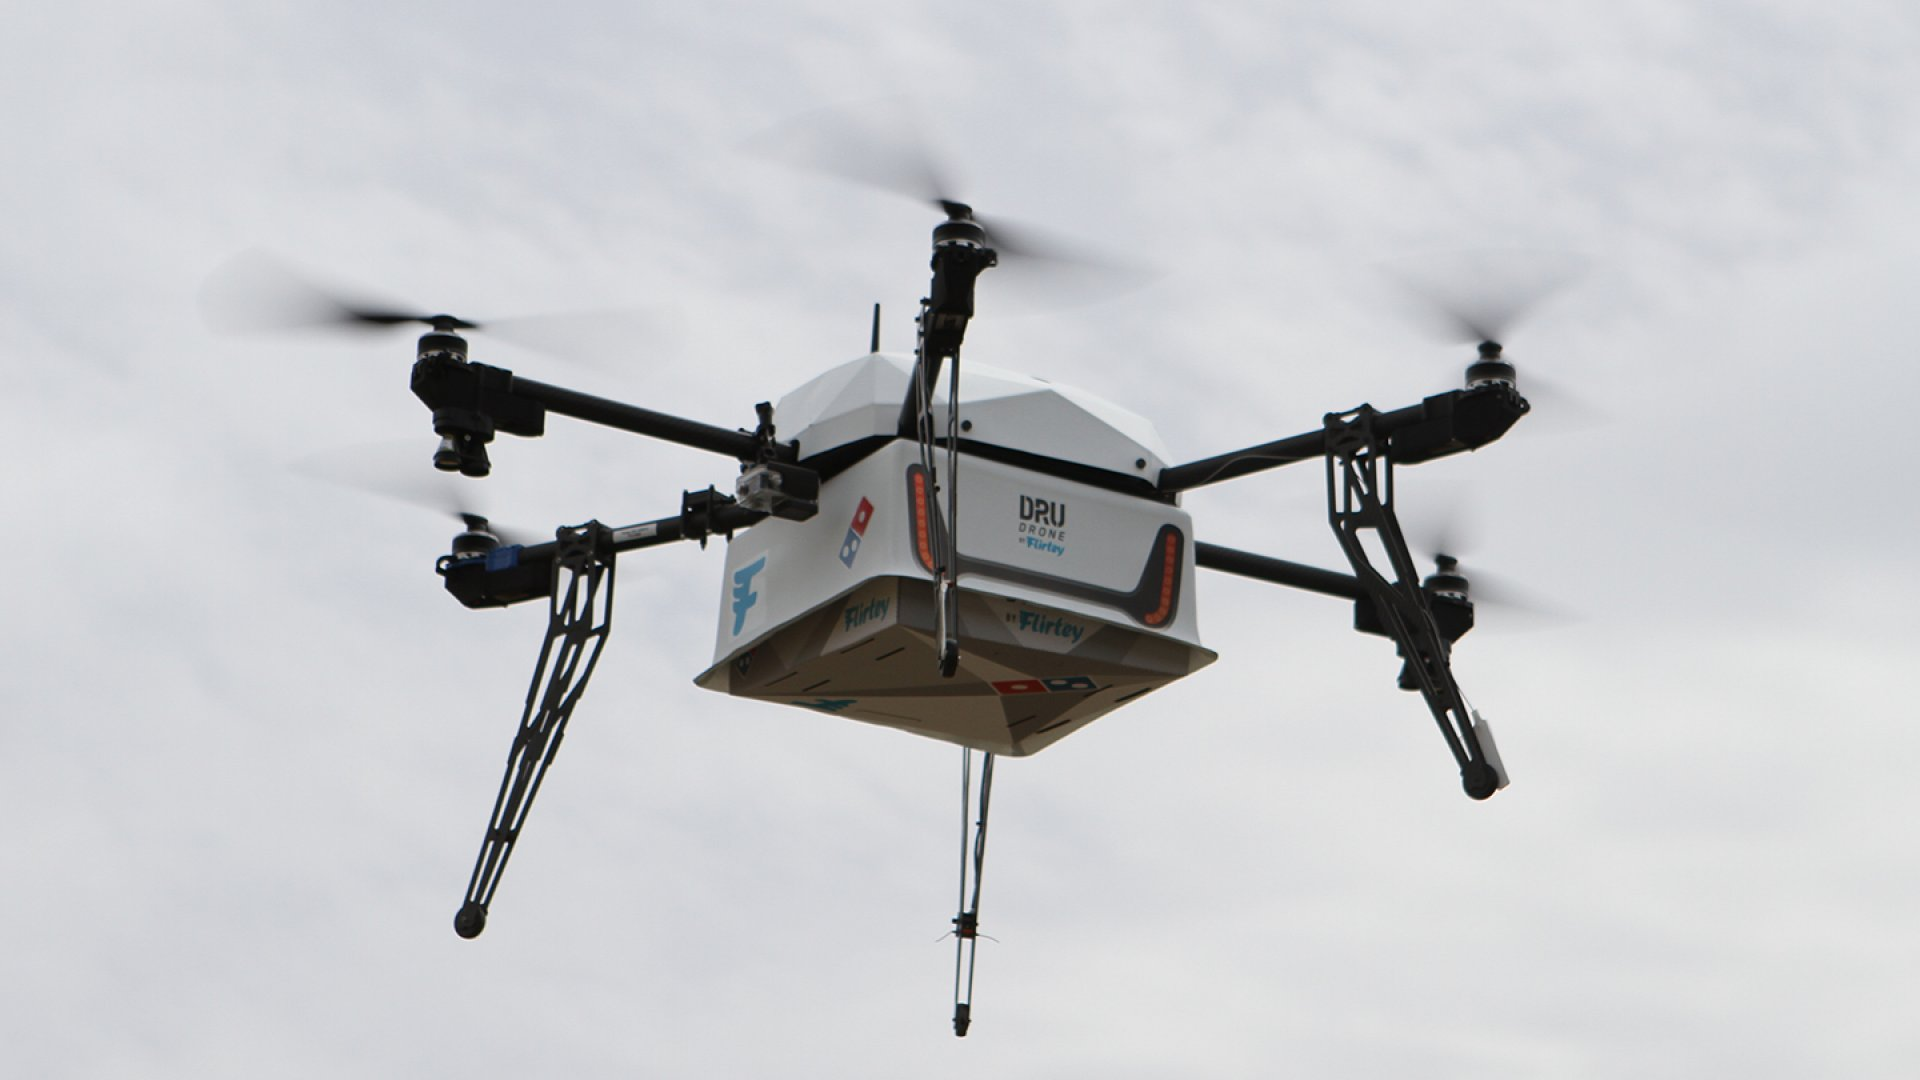 Flirtey launched its delivery drone in New Zealand to deliver Domino's pizza.